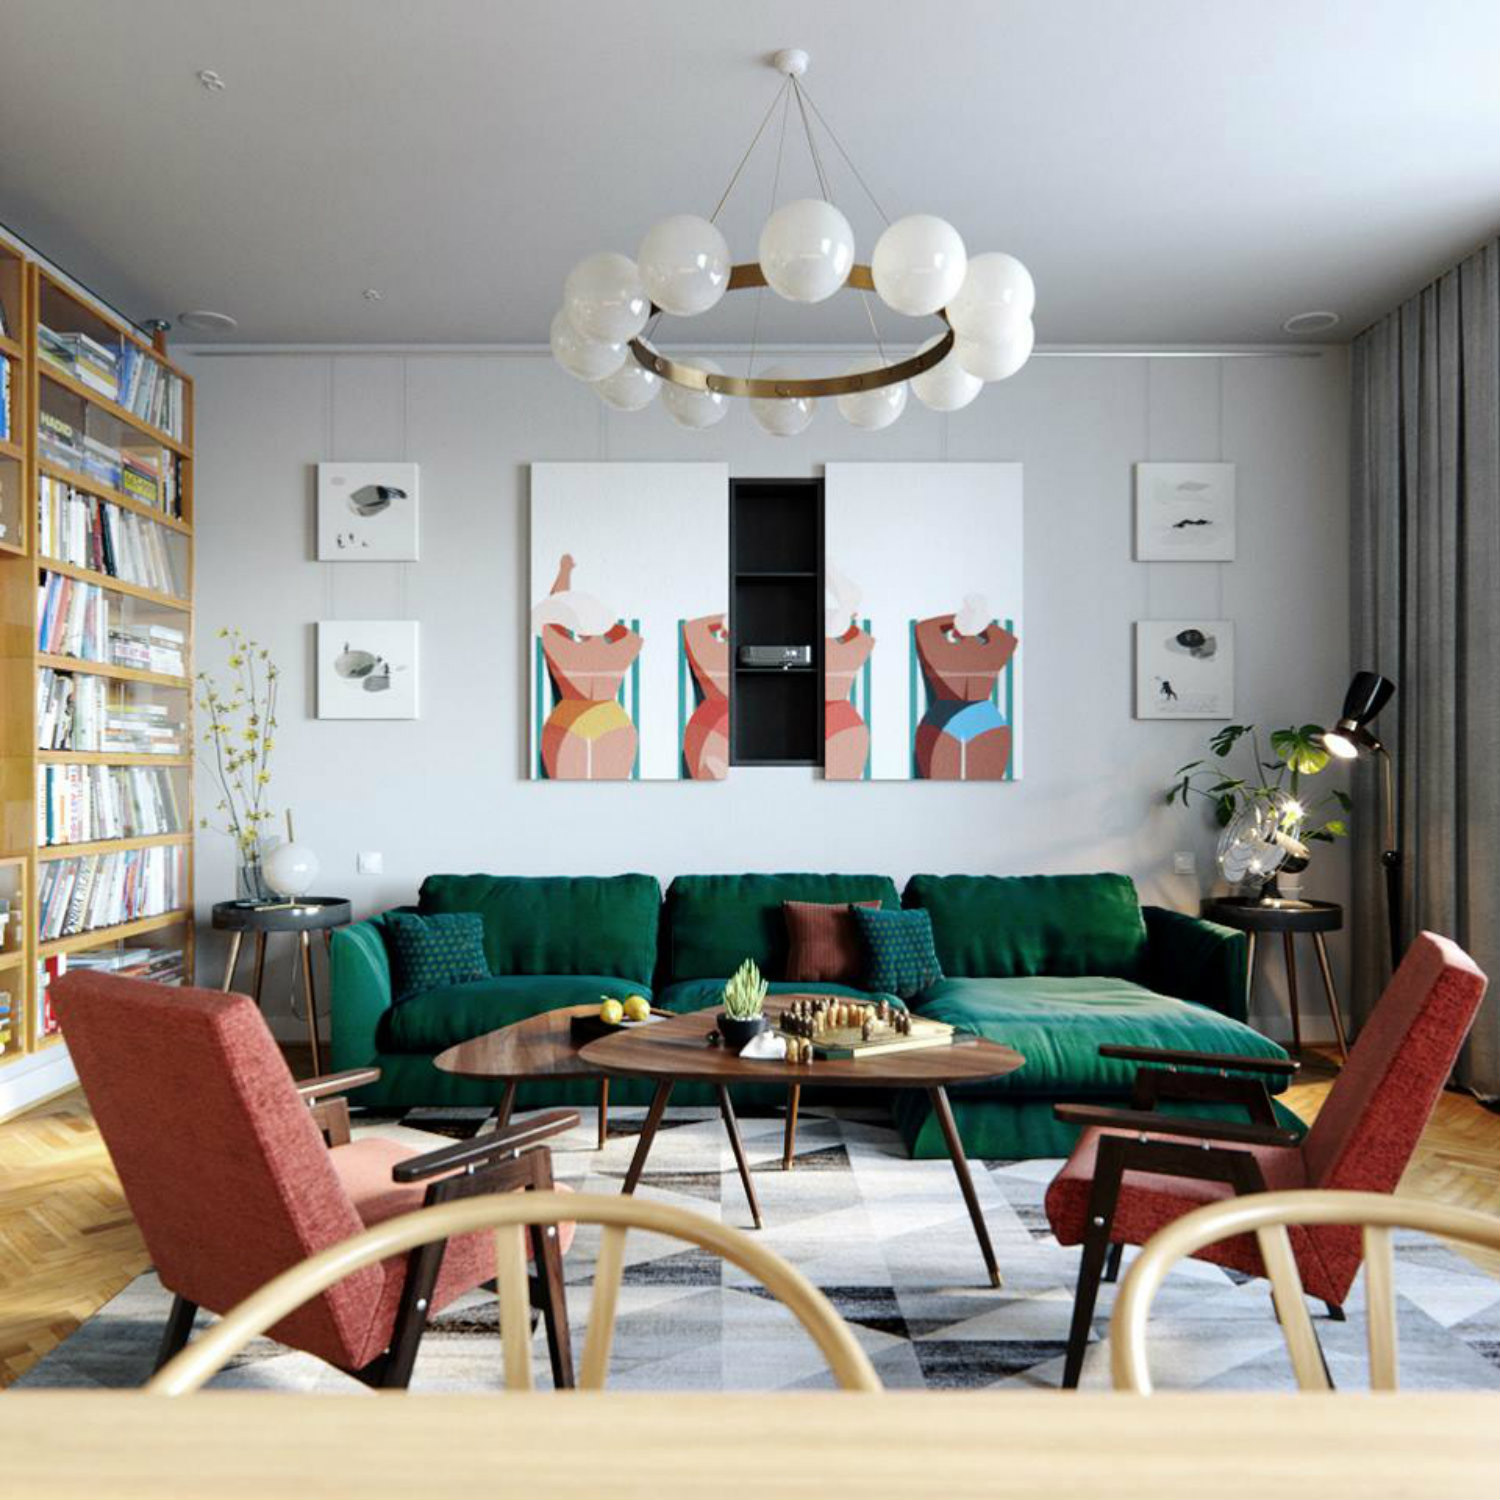 7 Tips to Create a Mid-Century Modern Living Room